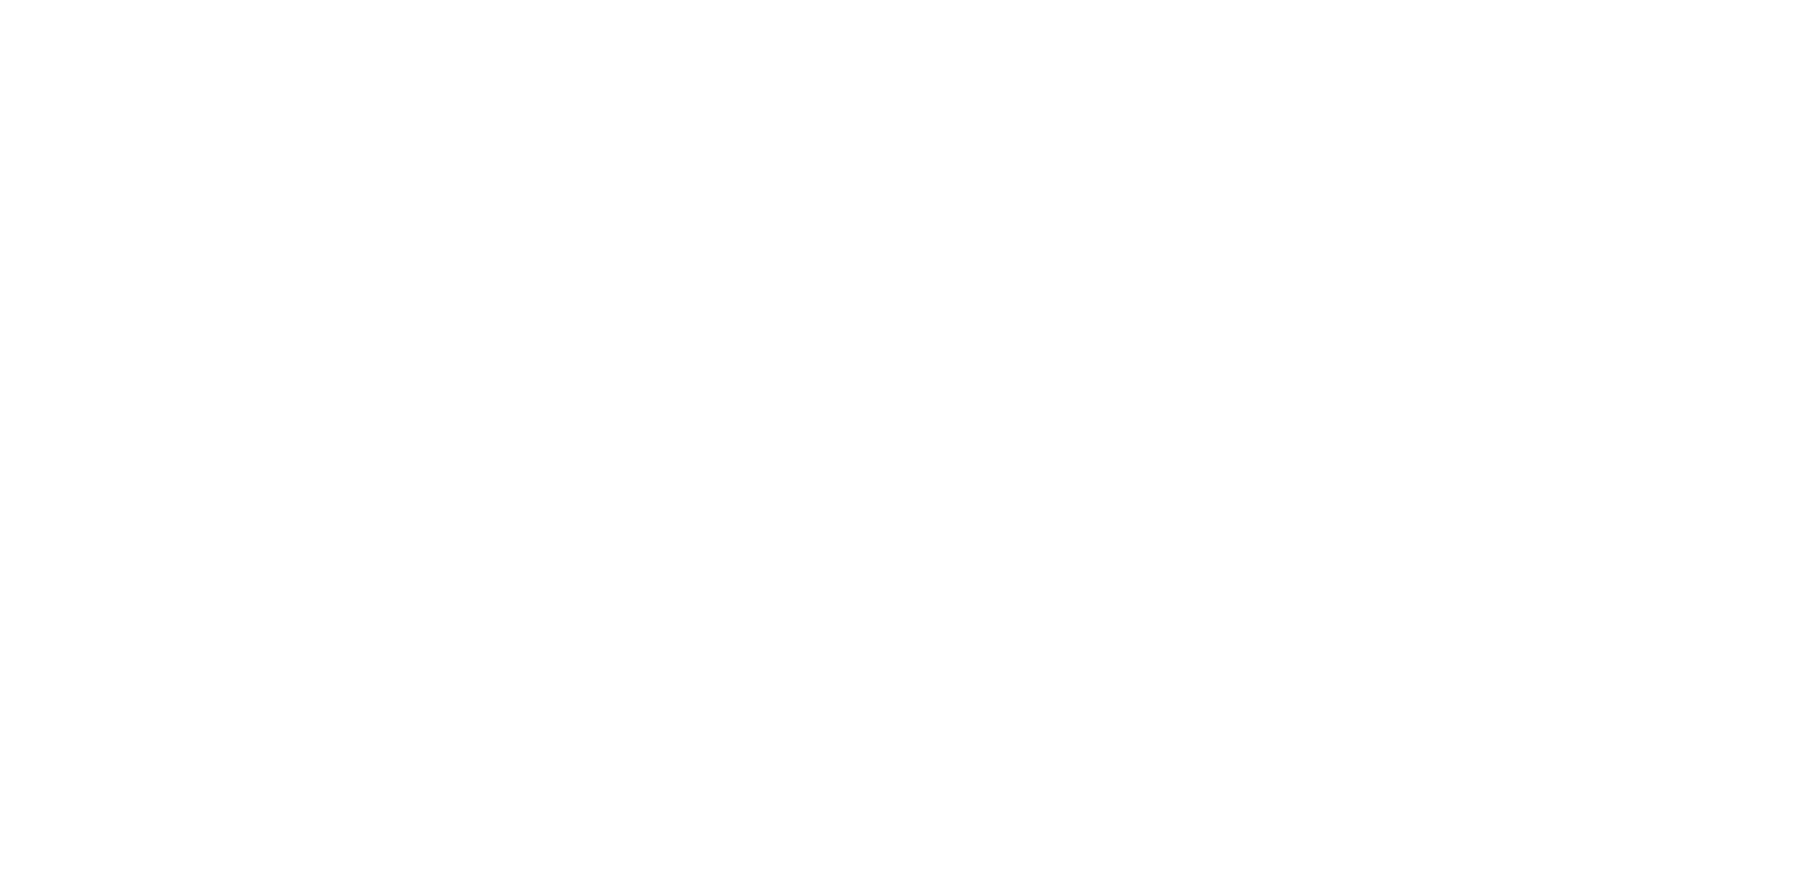 Love: Dr. Susan Love Foundation for breast cancer research